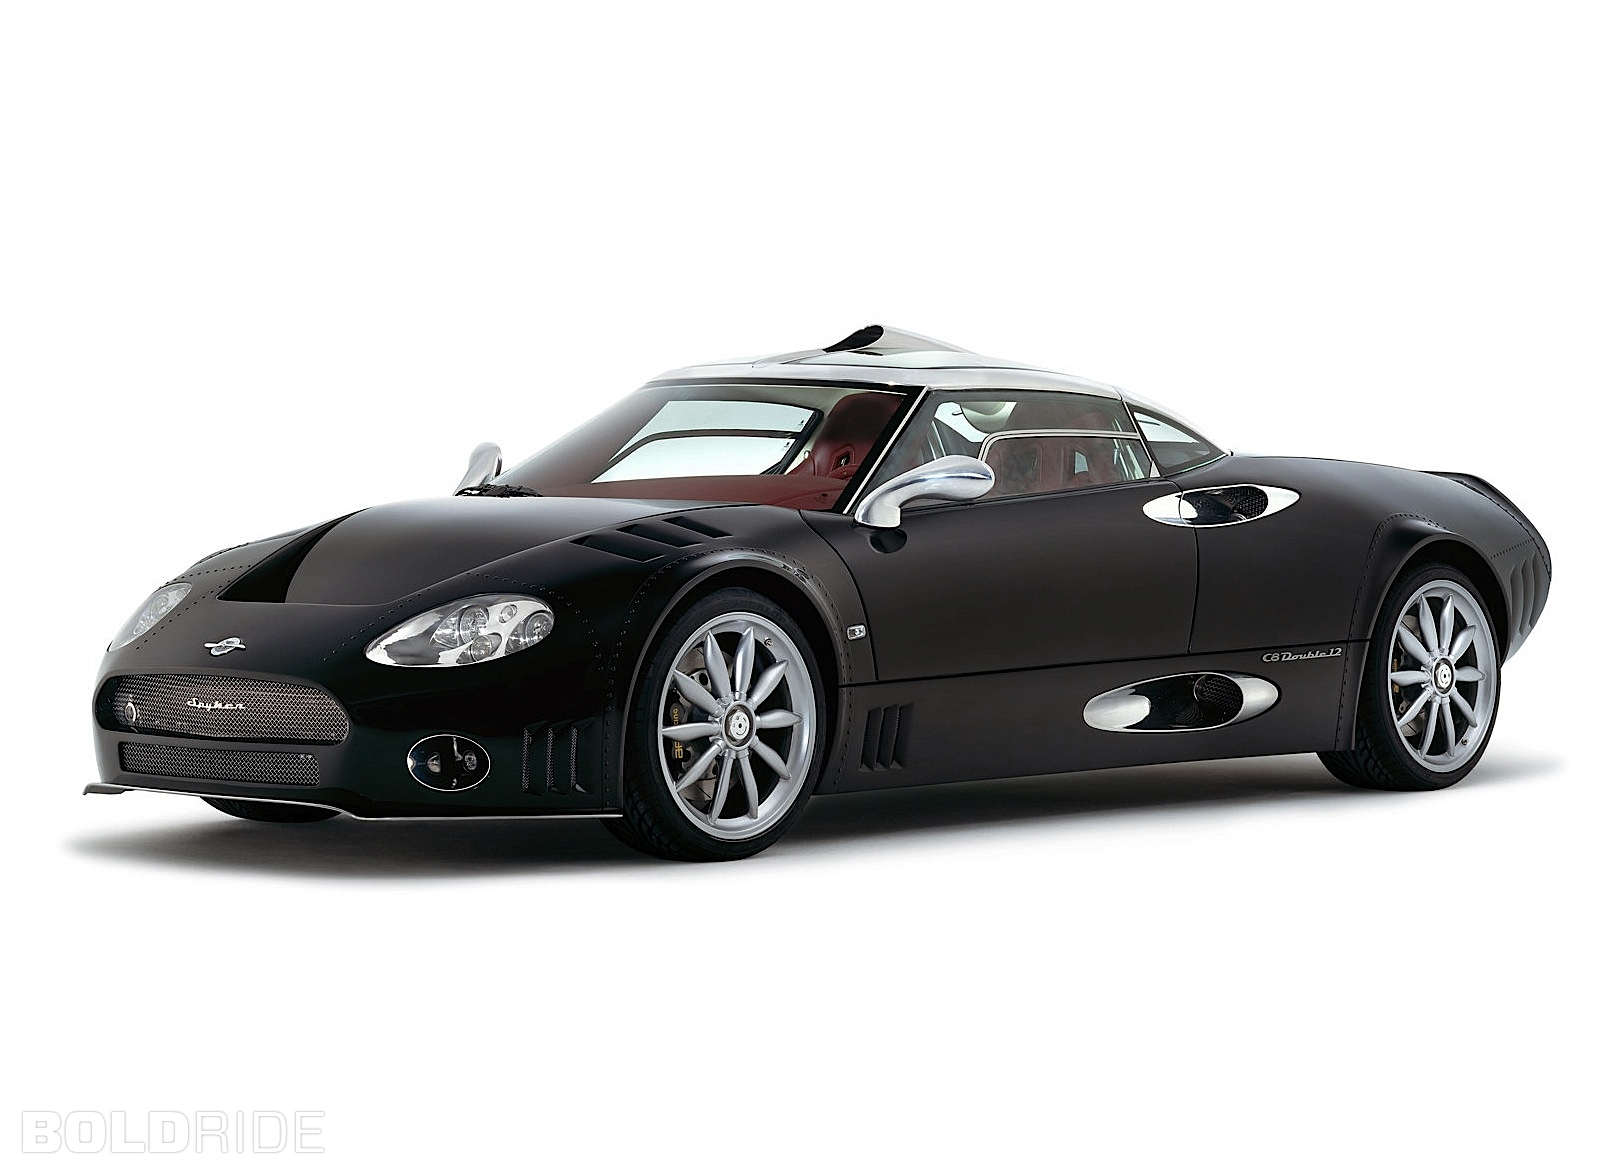 2005 Spyker C8 Double 12 S Spyder photo - 1